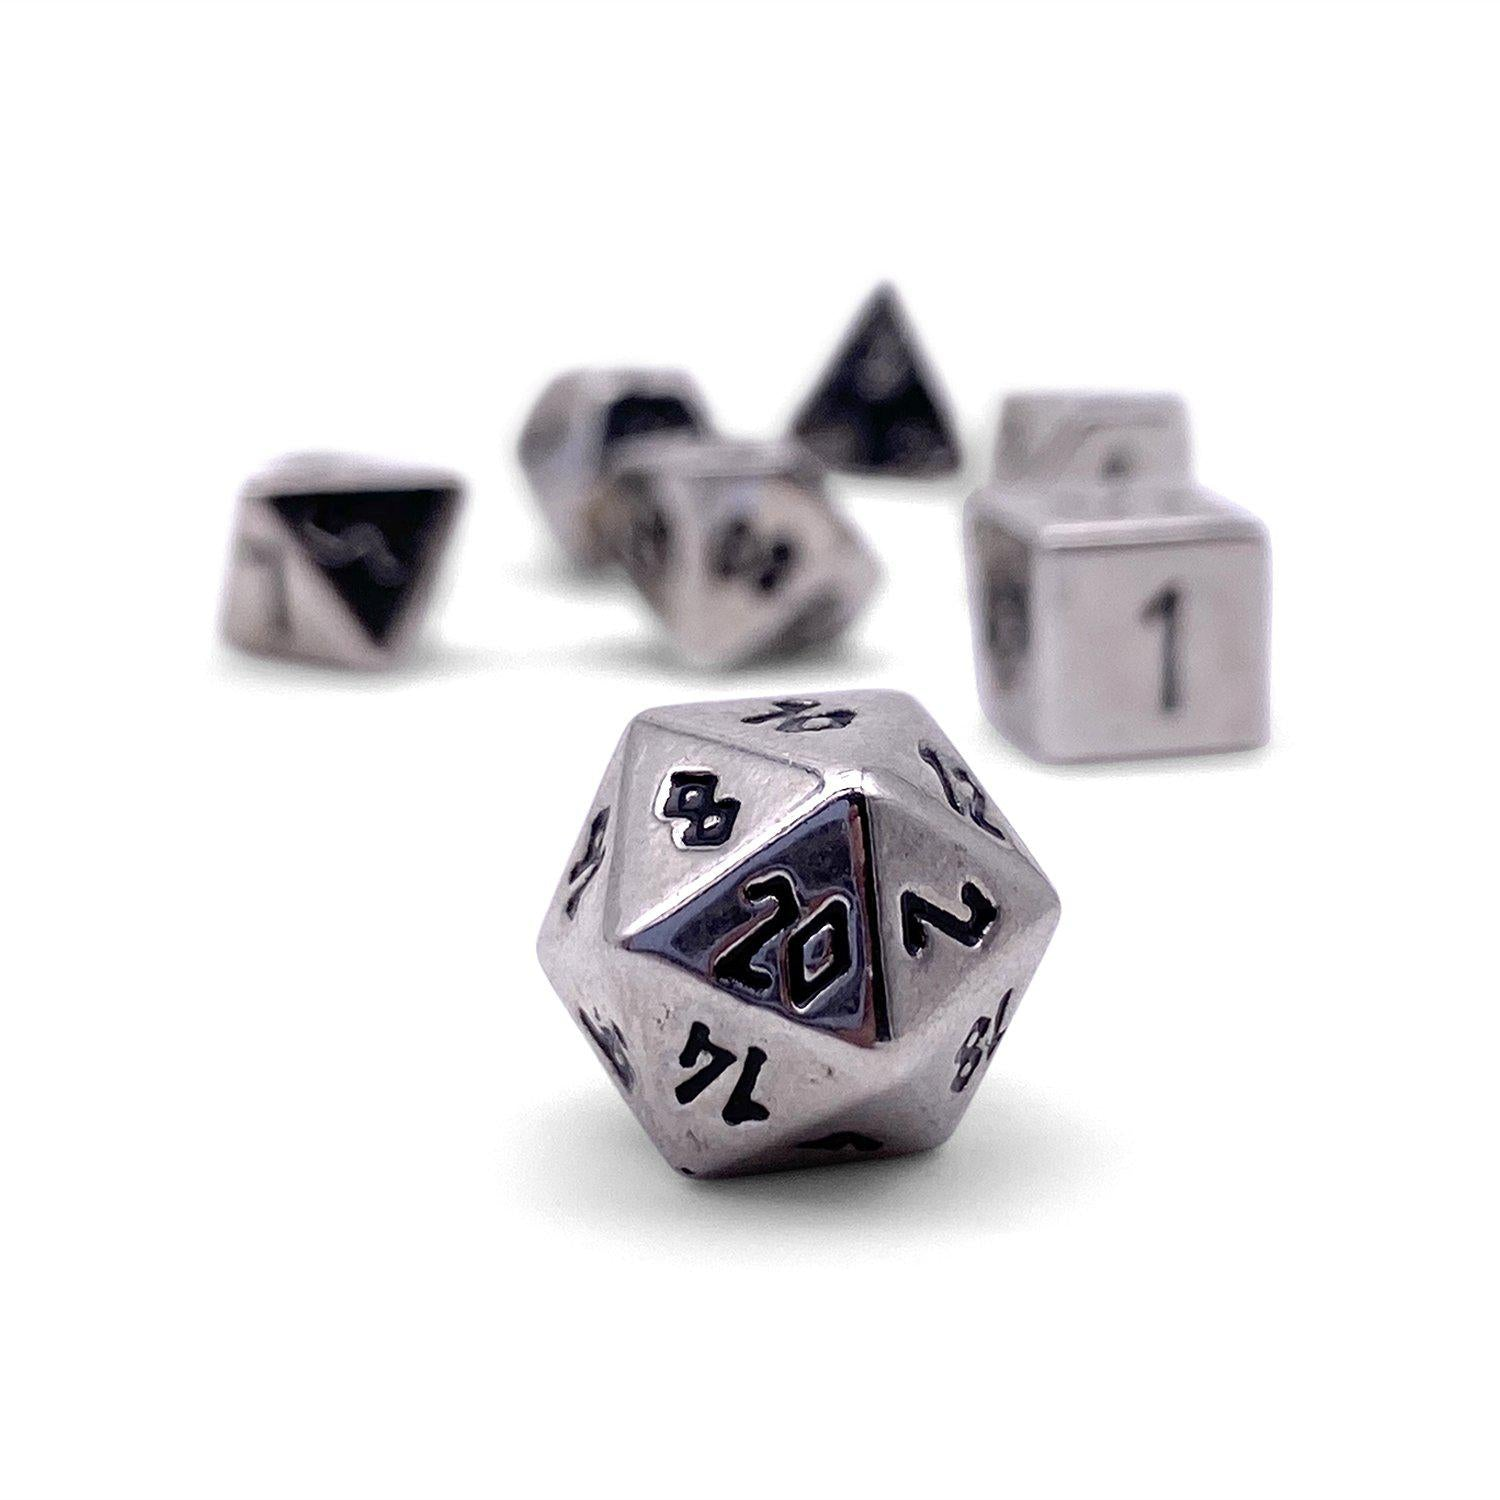 Chainmail Silver Pebble ™ Dice - 10mm Alloy Mini Polyhedral Dice Set